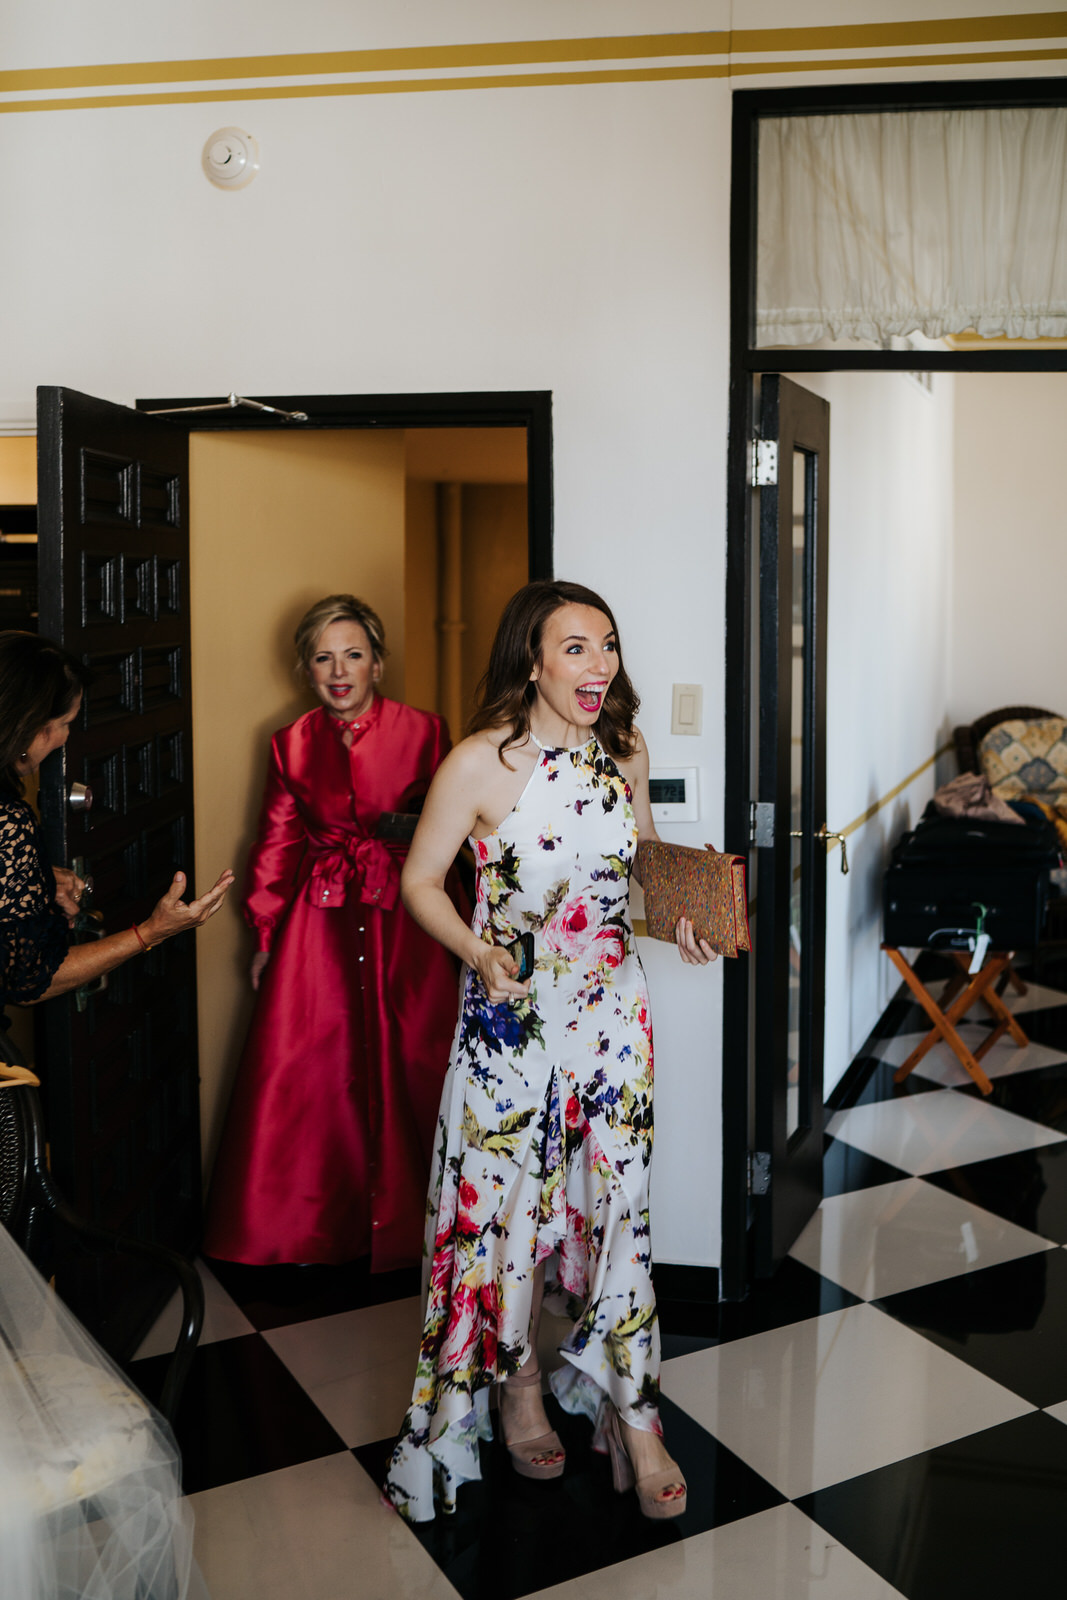 Groom's sister and mother enter the room where bride is getting ready for wedding and smile in shock when they see her